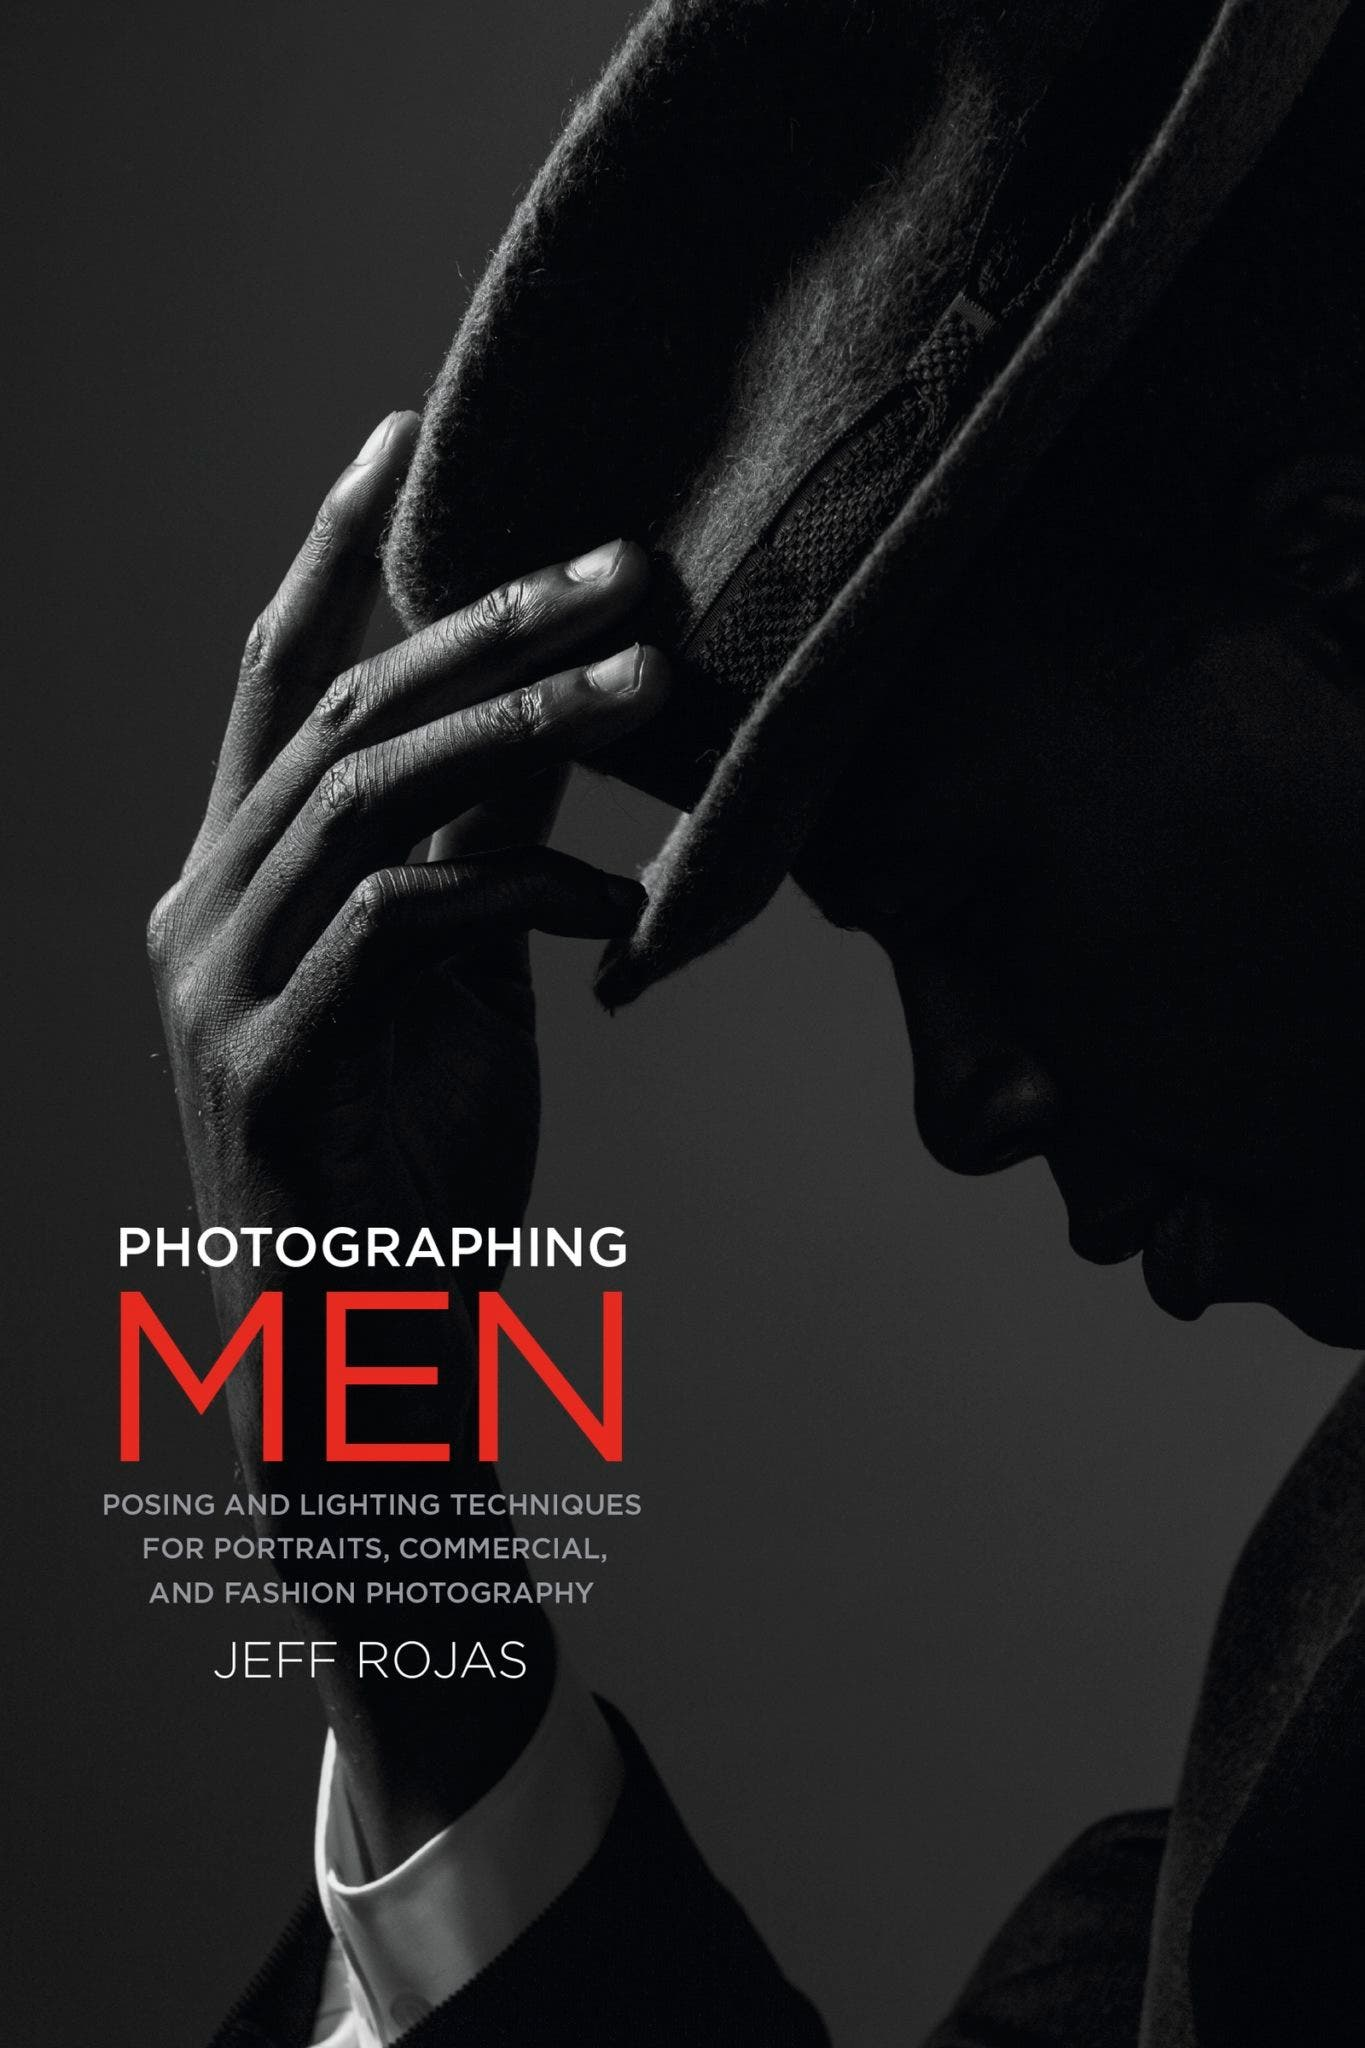 PhotographingMenBookCover